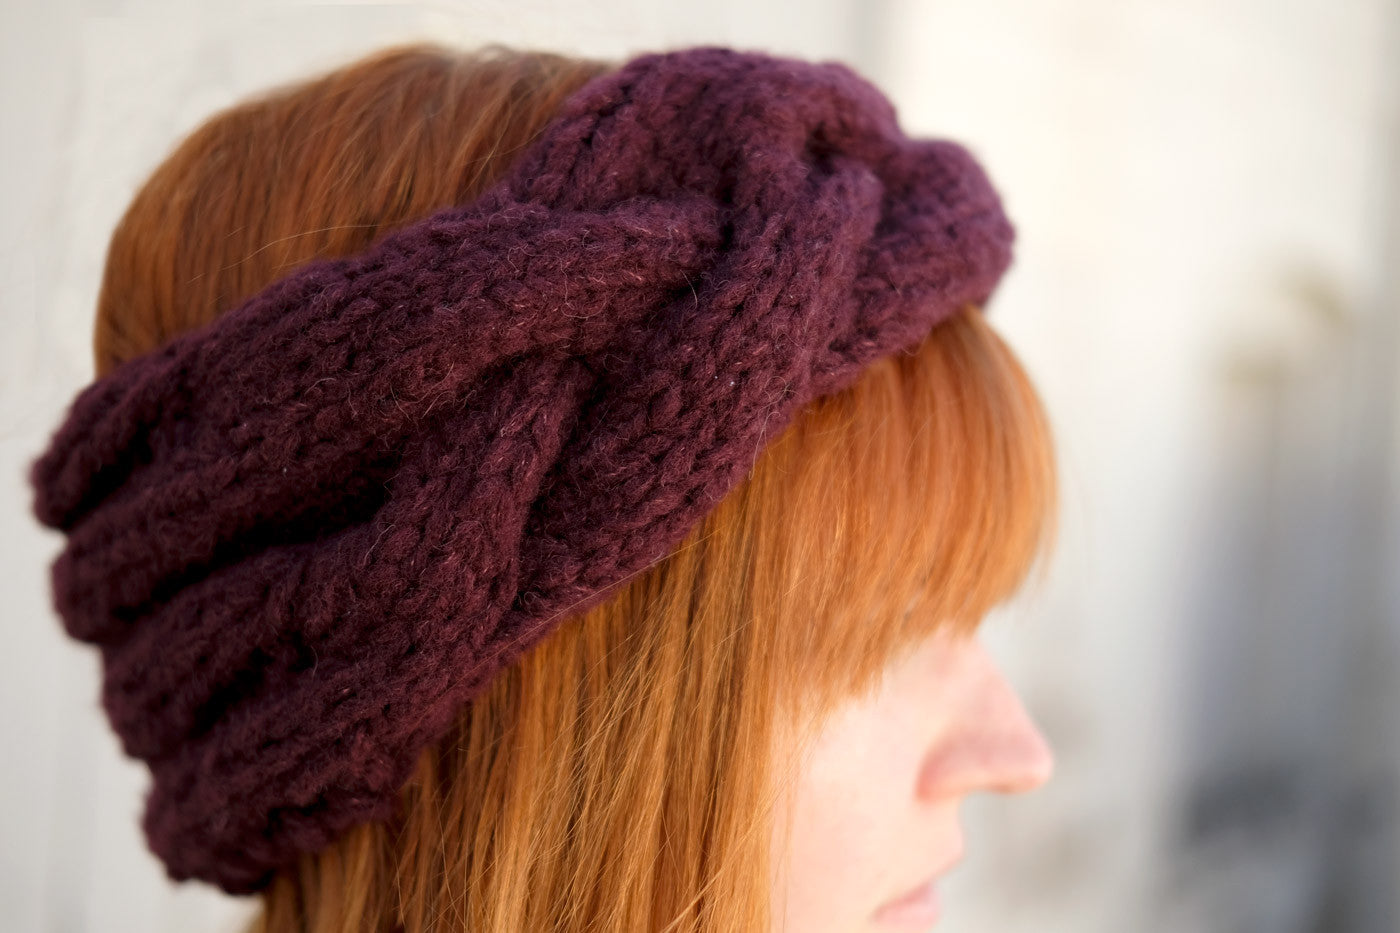 Lauren's Simkcoe Headband out of Woolfolk Hygge